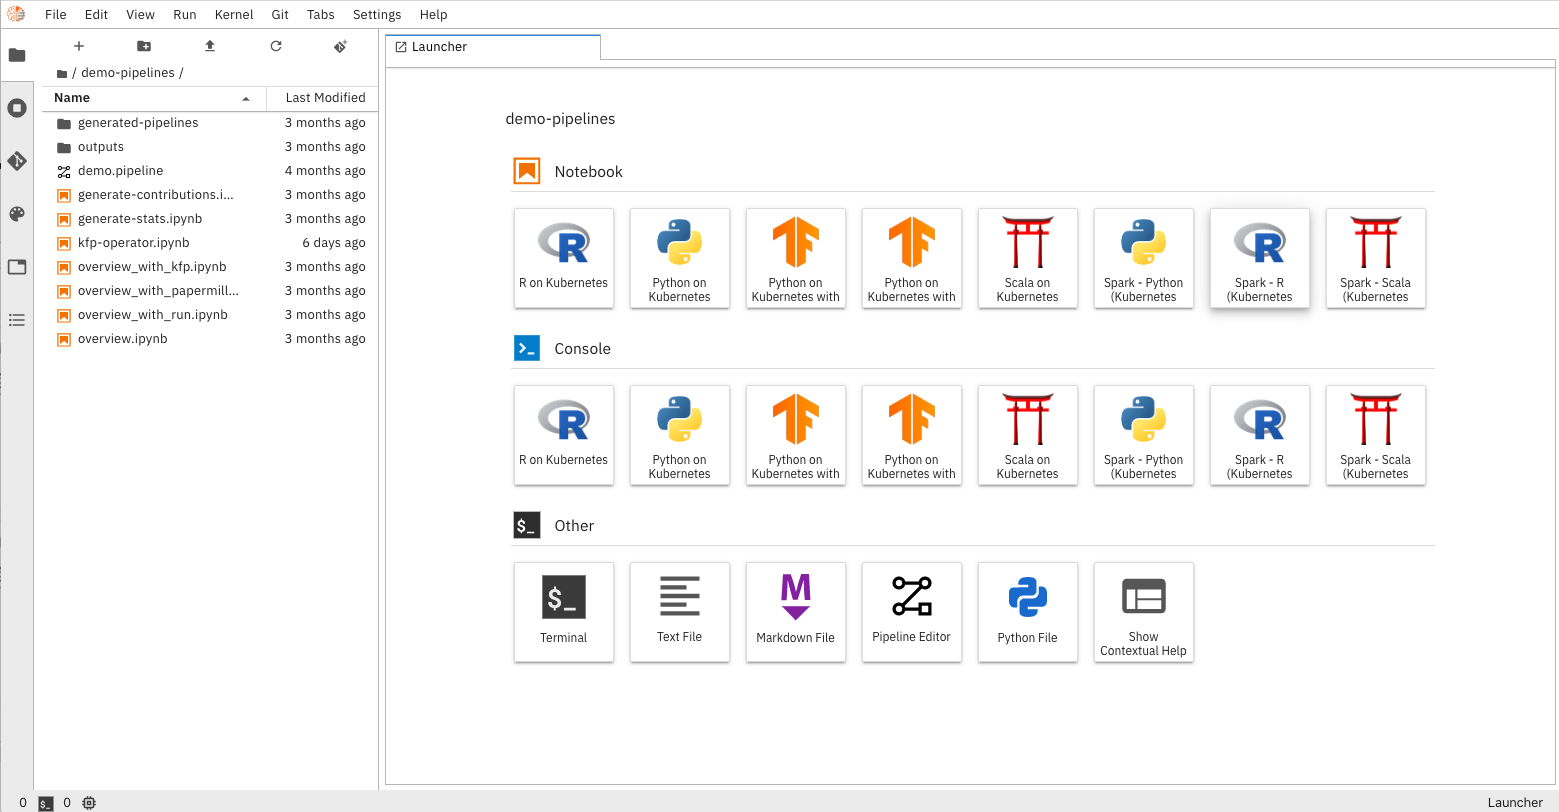 View of main page of AI Workspace